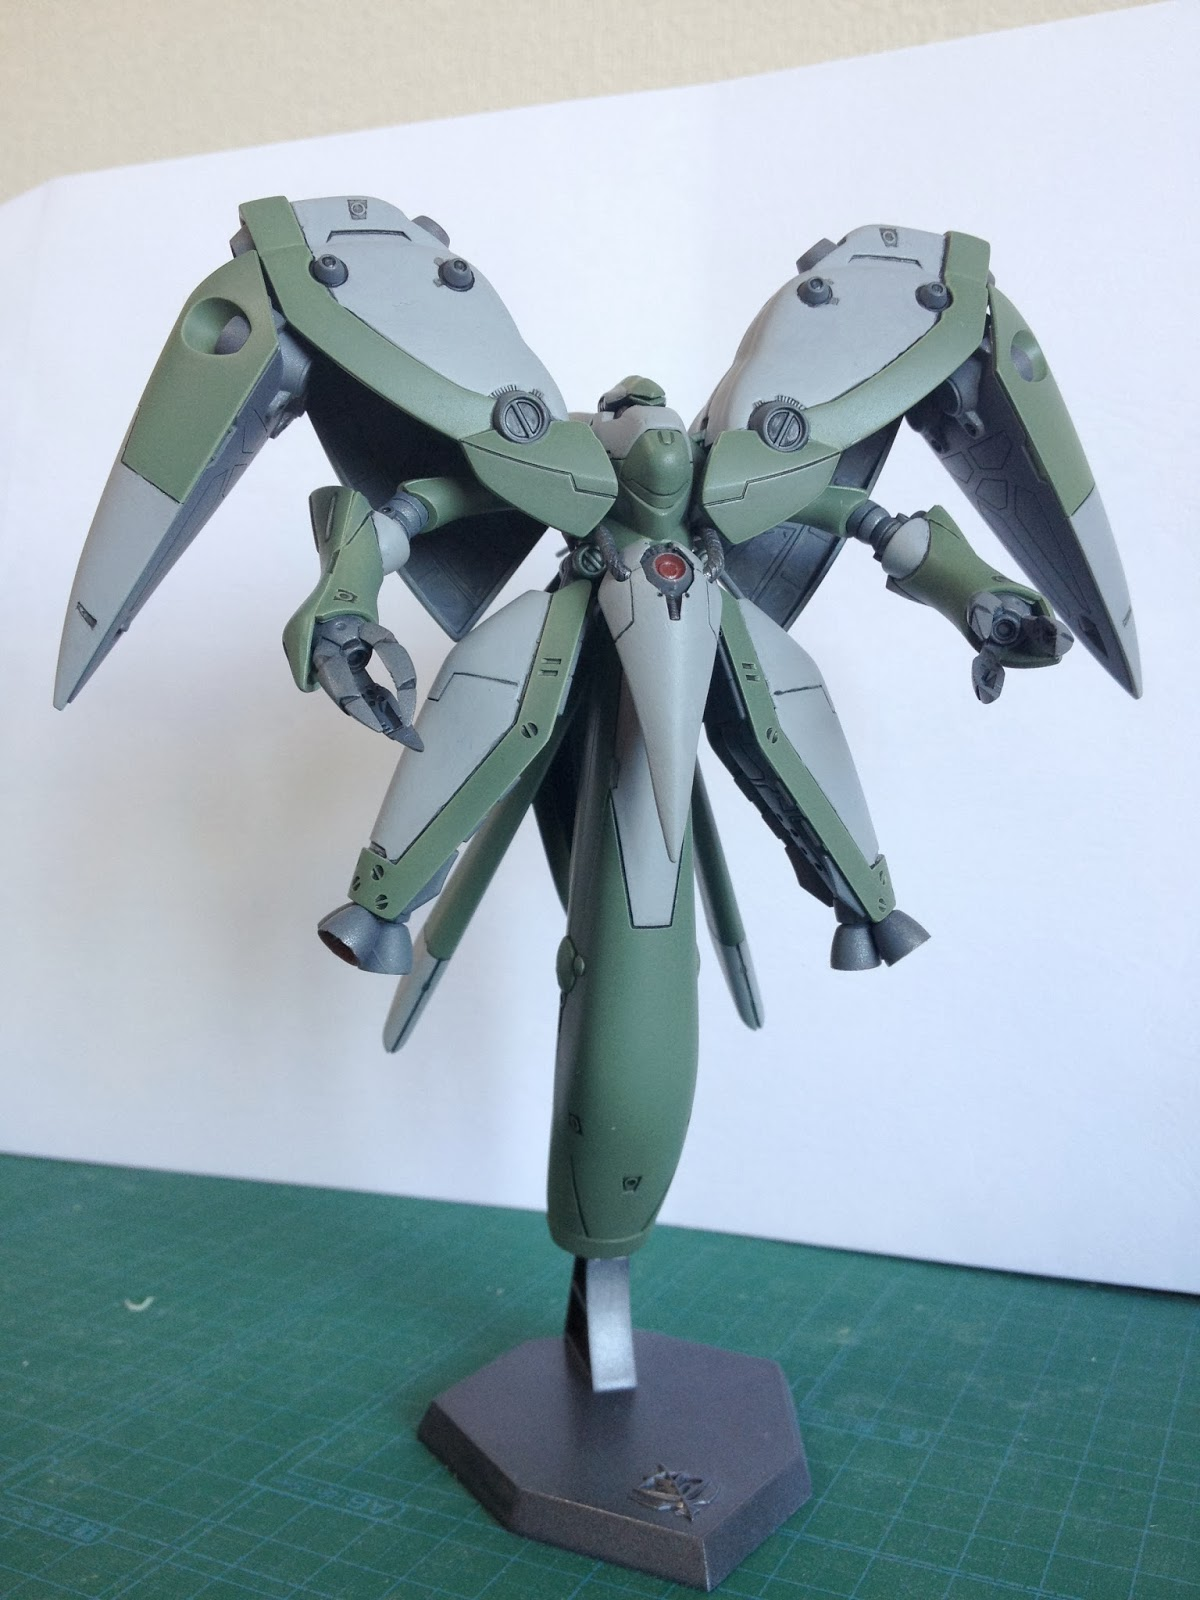 Hgm 1 550 Neue Ziel Zakuaurelius Gundam Hg Mechanics Dendrobium This Is The High Grade Scale Model Kit Of Amx 002 Mobile Armor Produced In 2001